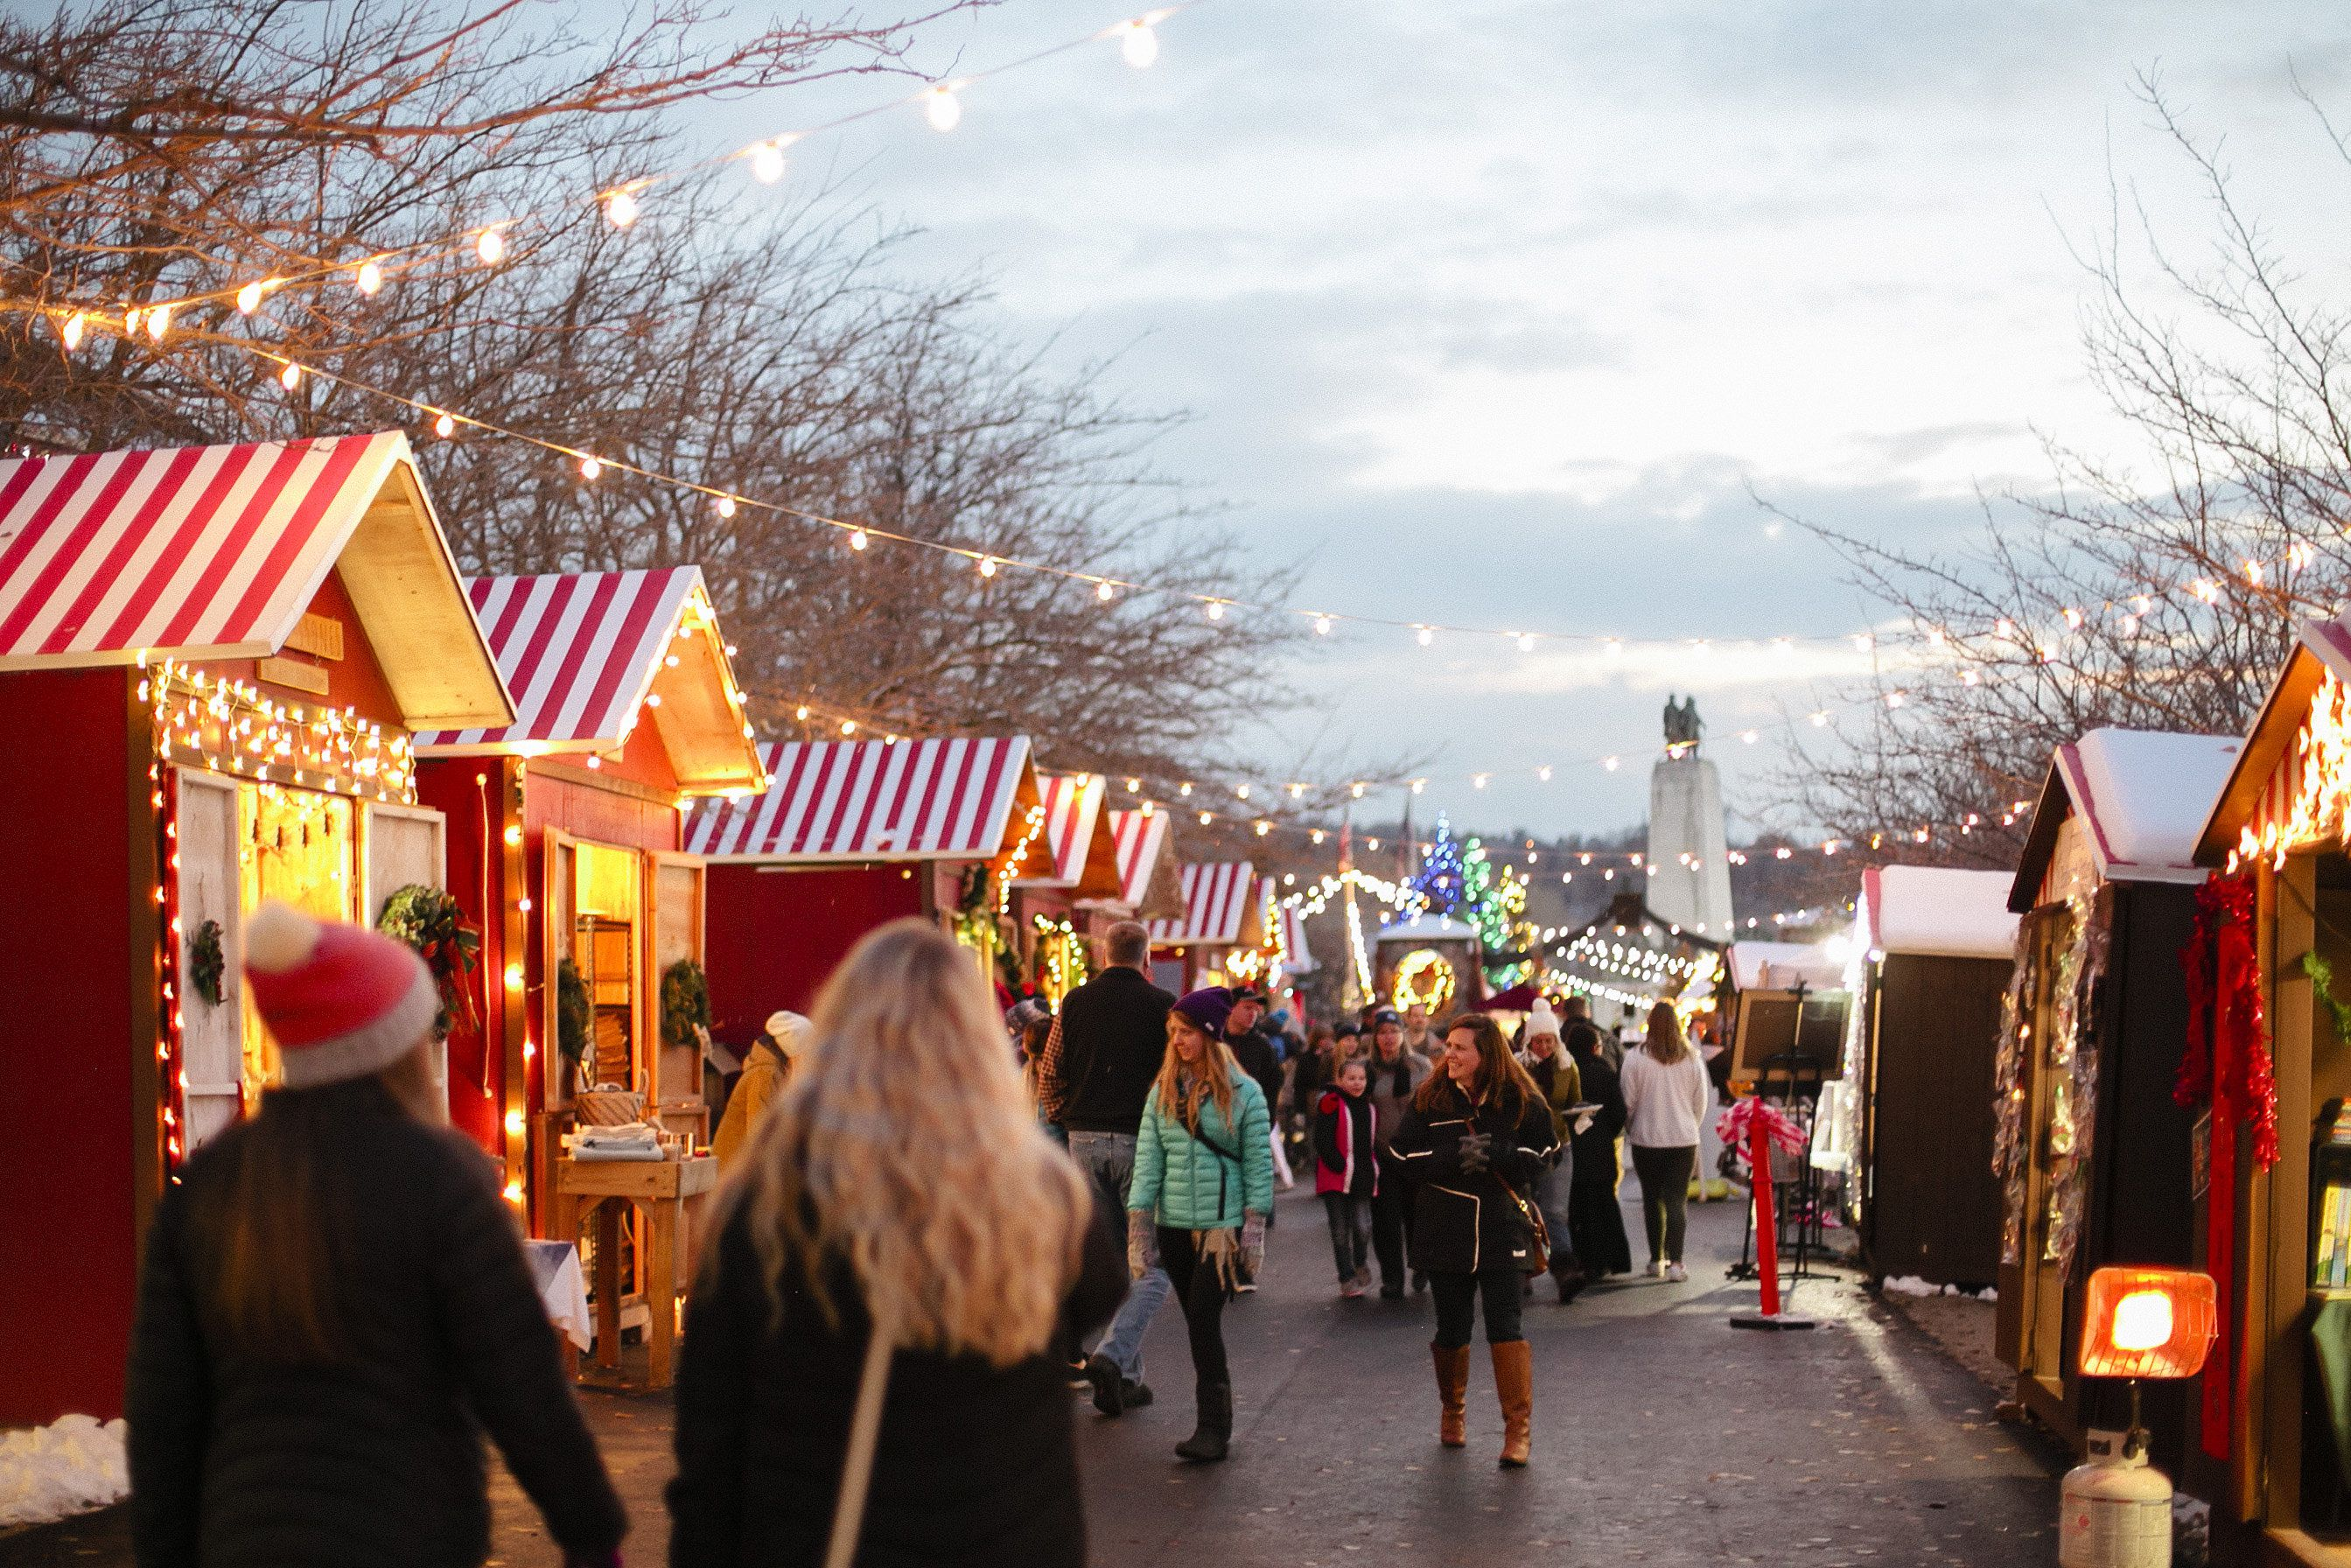 People shopping and walking around the Christmas Market in SLC